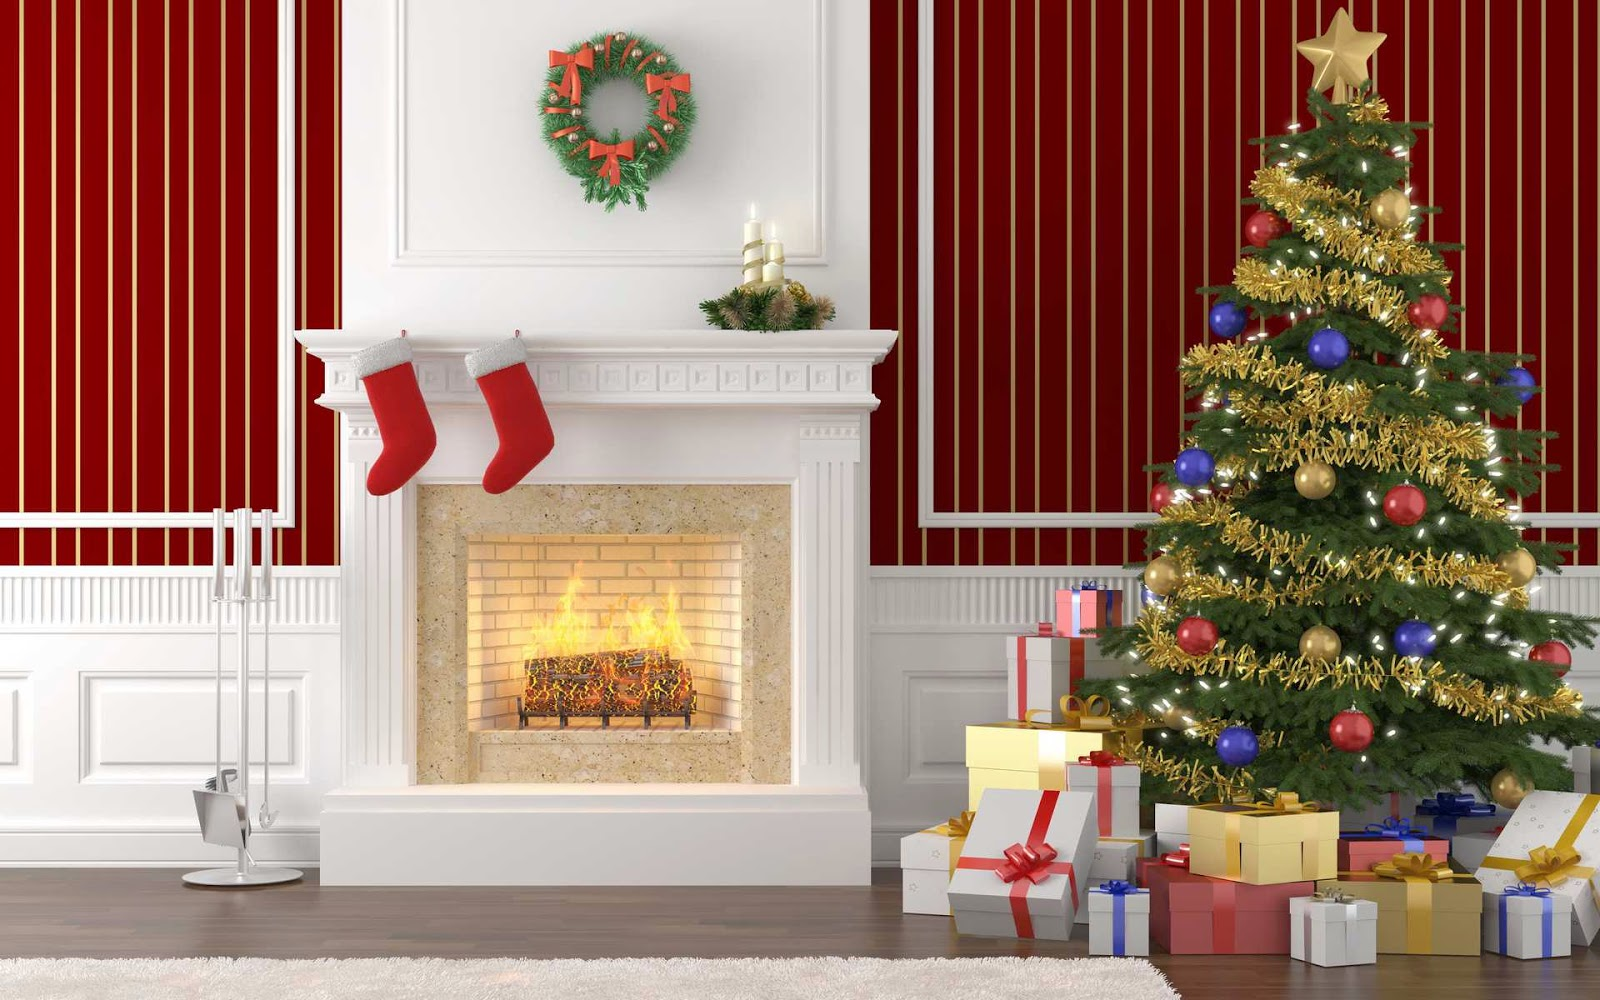 Christmas fireplace mantel decoration ideas for home made for Christmas decorations at home pictures